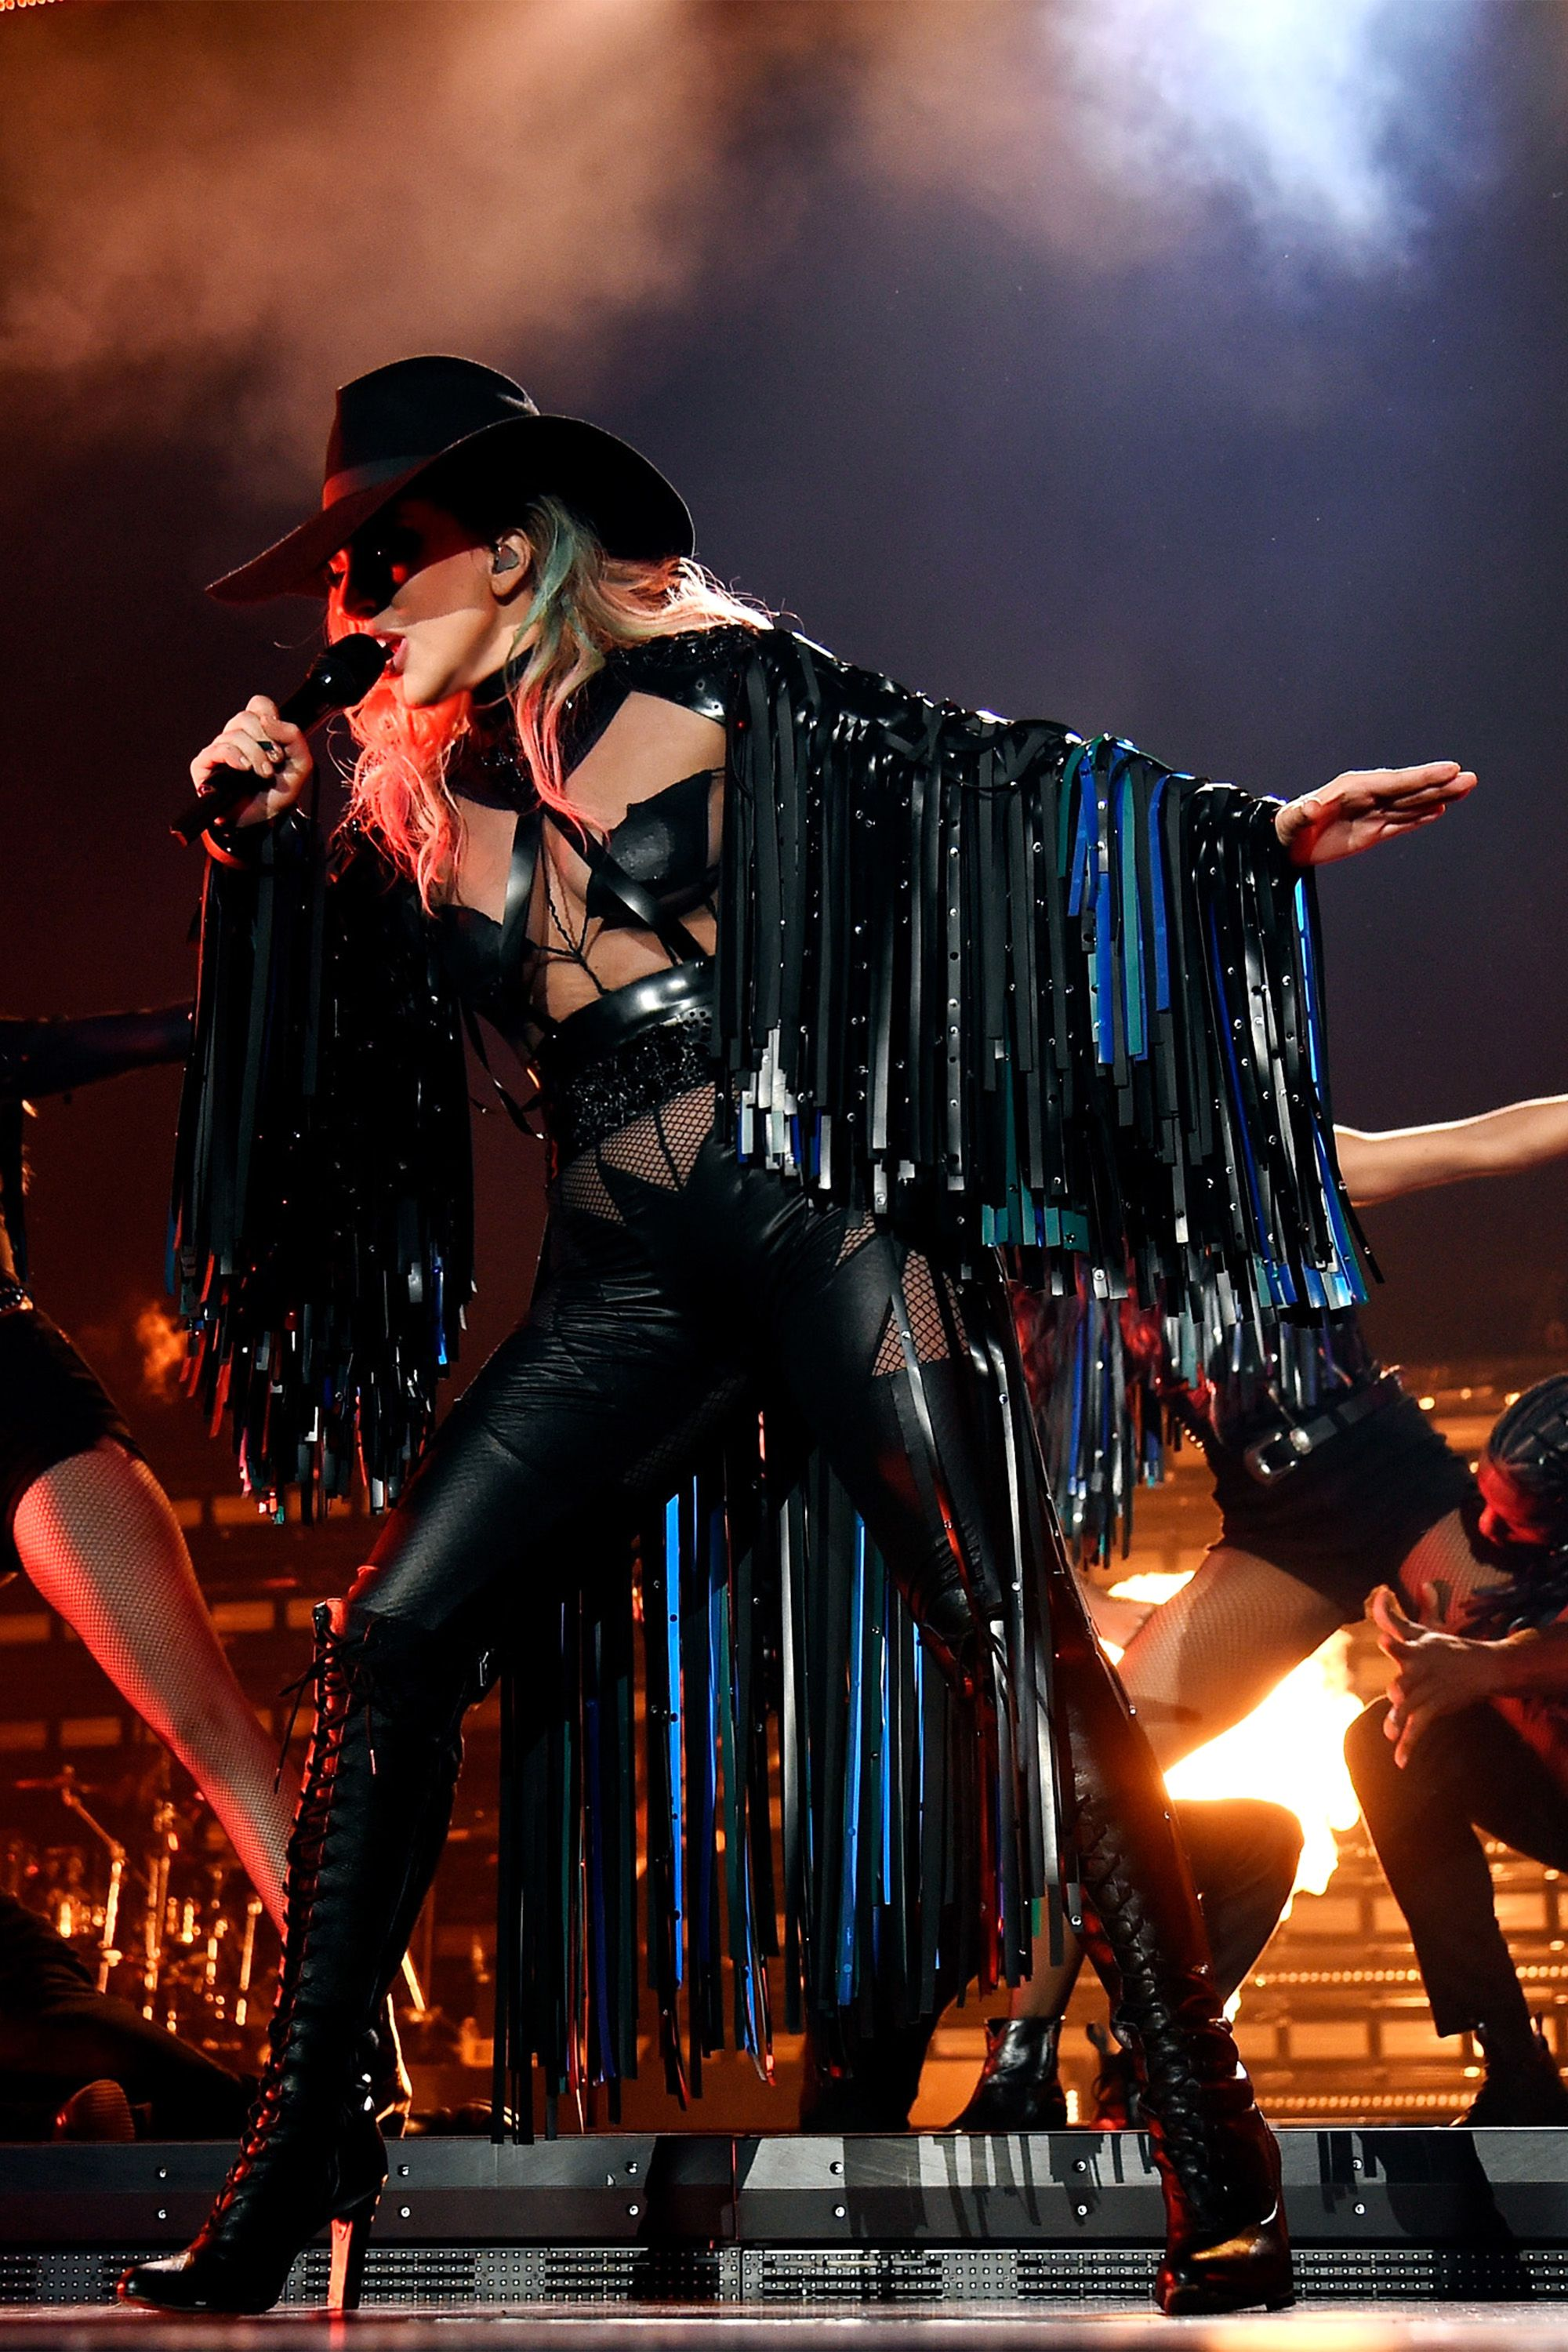 hbz-lady-gaga-tour-gettyimages-828995556-1502378429.jpg